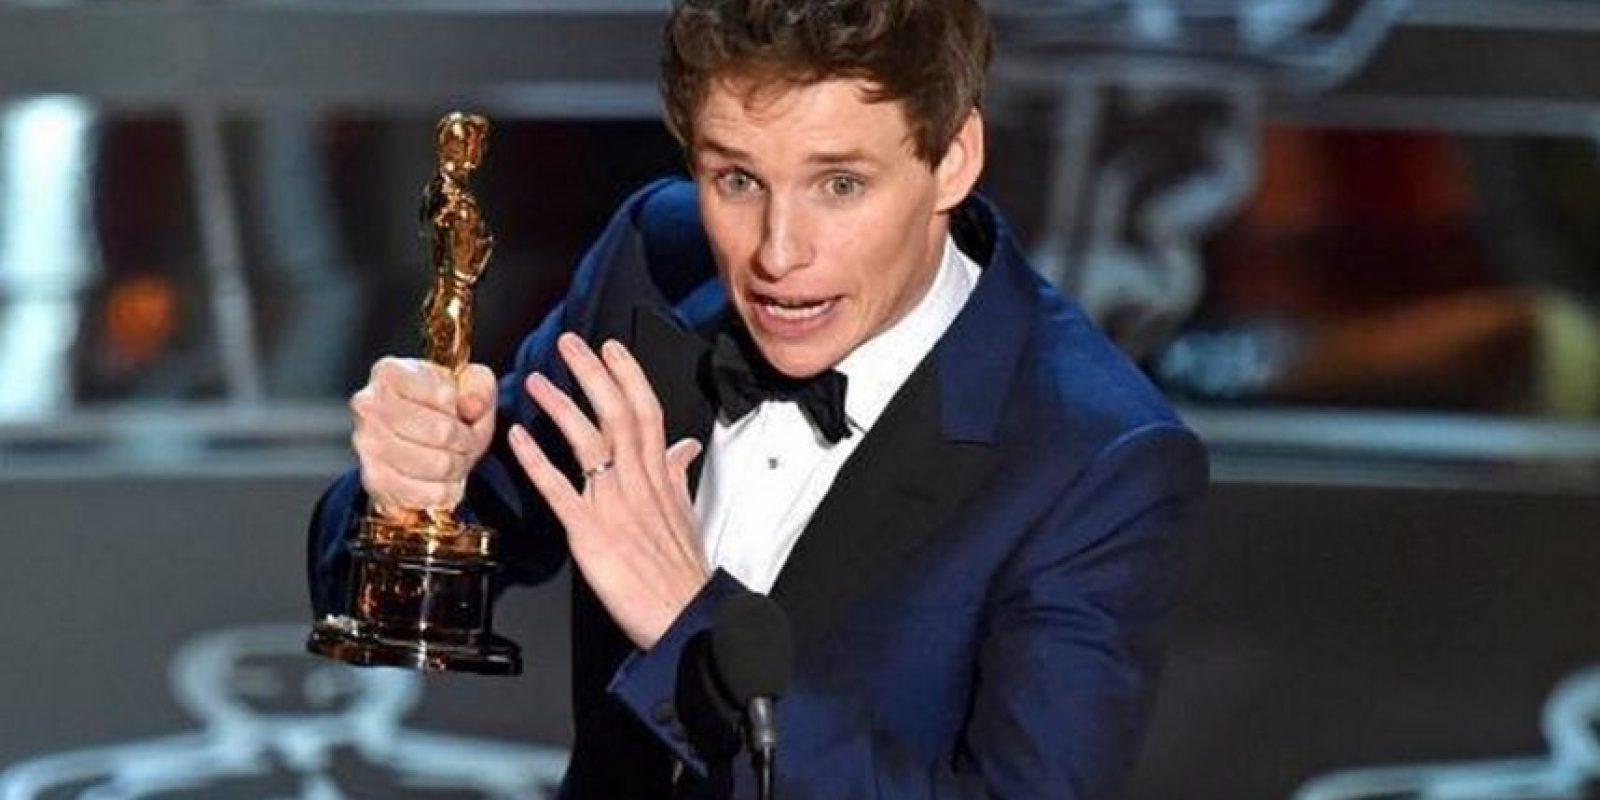 Redmayne actuó con el National Youth Music Theatre y realizó su debut profesional en la obra Noche de reyes en el Middle Temple Hall en 2002 Foto: Getty Images